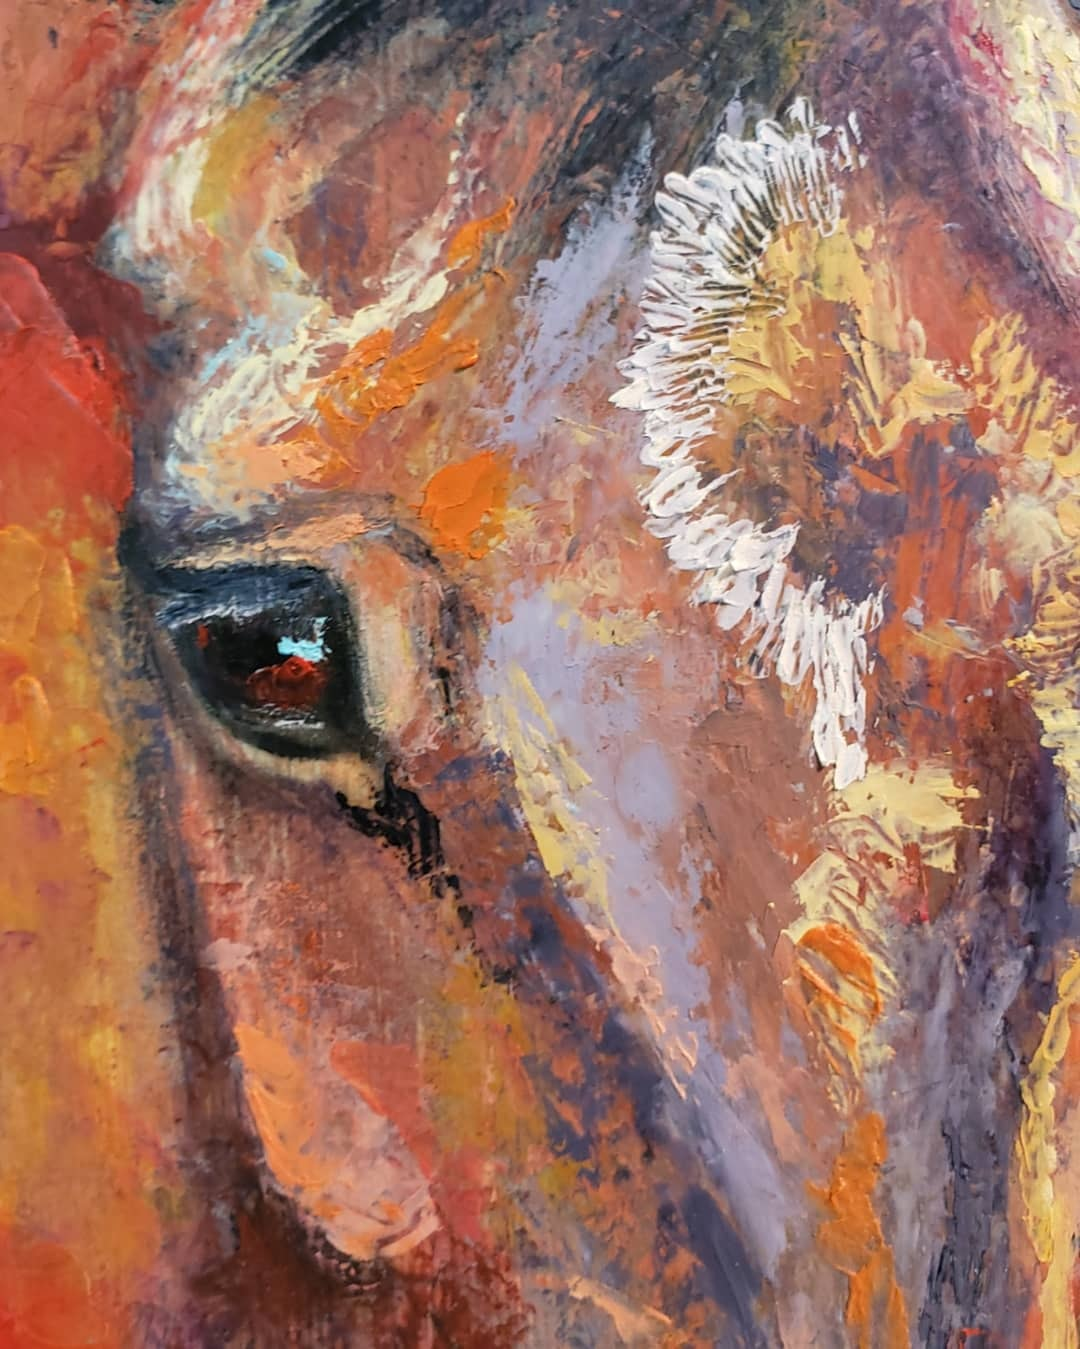 """Eye Detail showing texture and colour Horse portrait """"Curious"""" mixed media on Bamboo Cutting Board 10"""" x 15"""" Copyright Renee Forth-Fukumoto"""